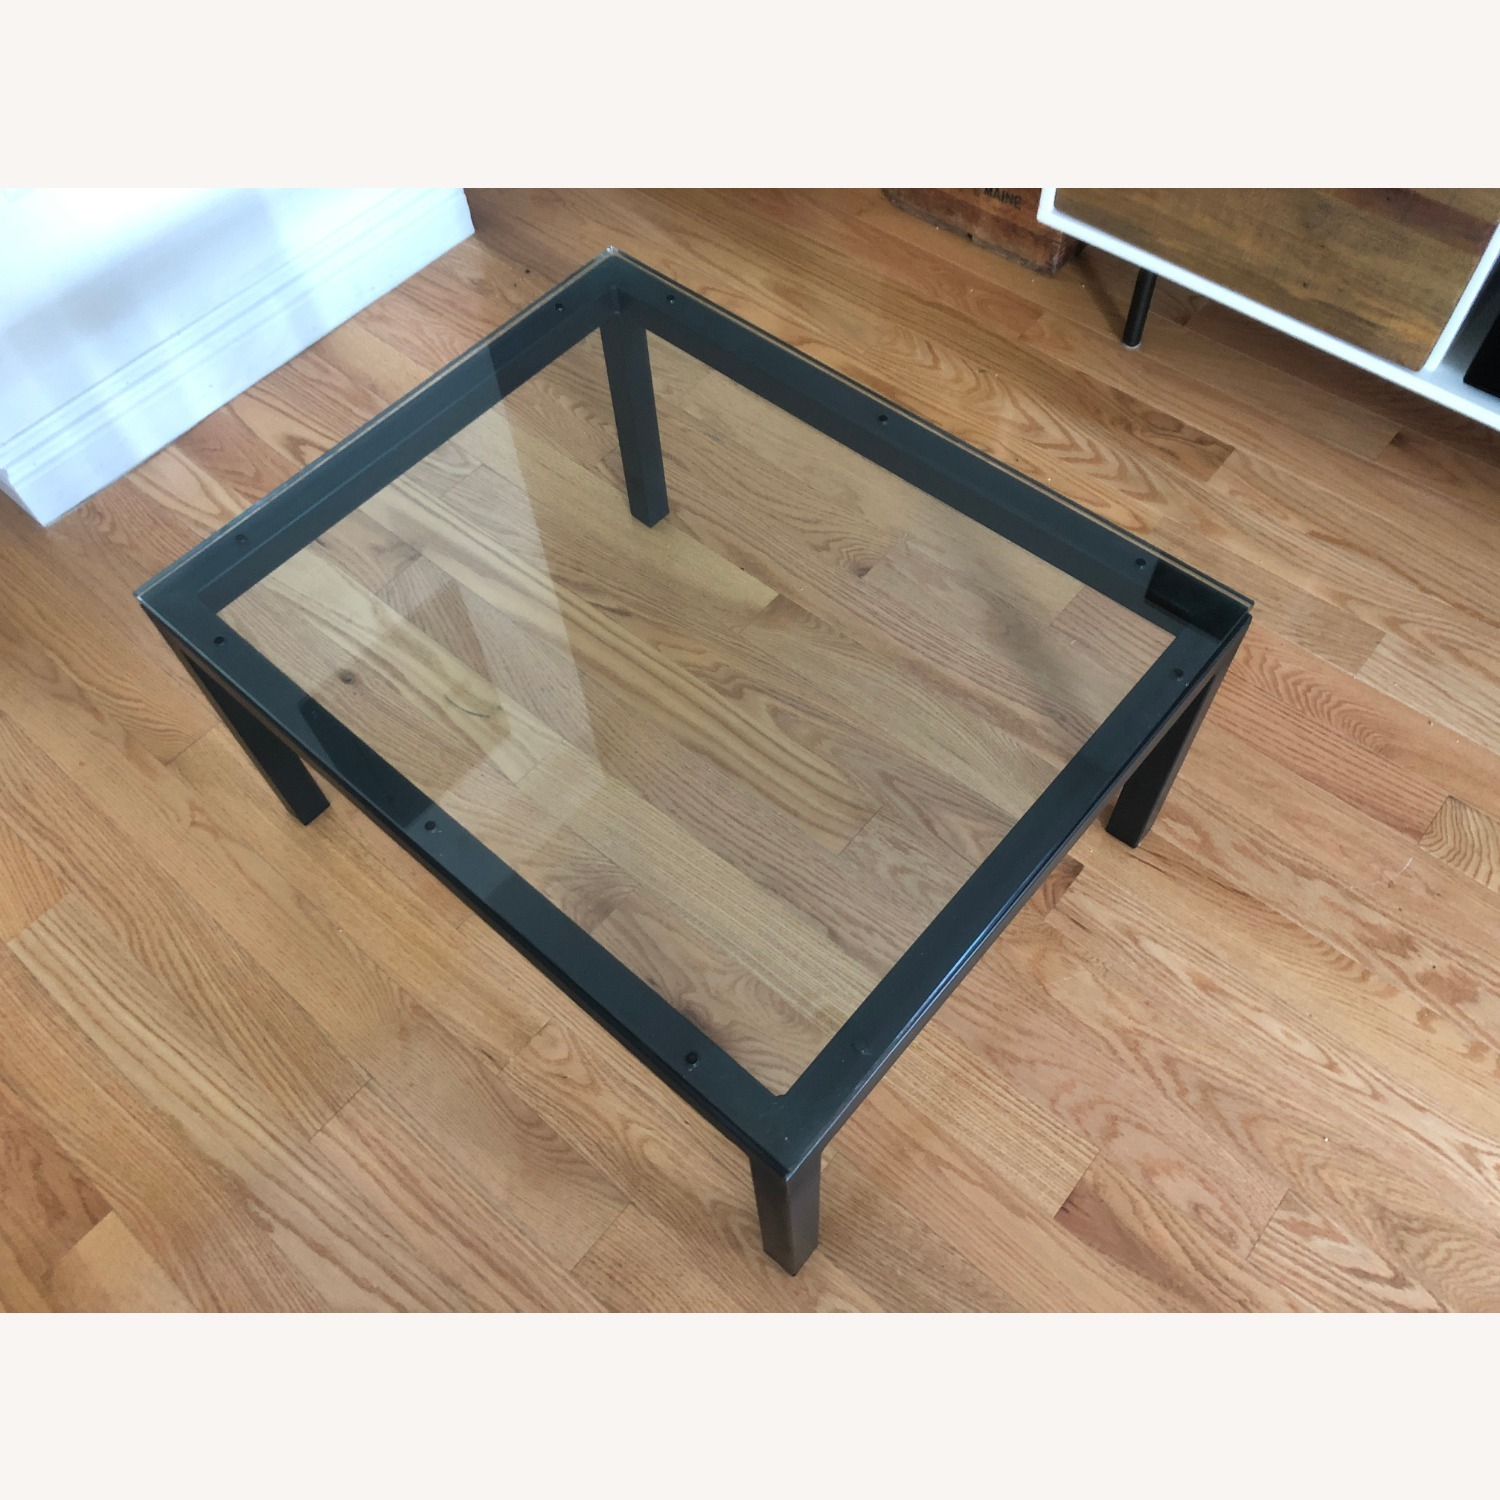 Room & Board Glass Top Parsons Coffee Table - image-1